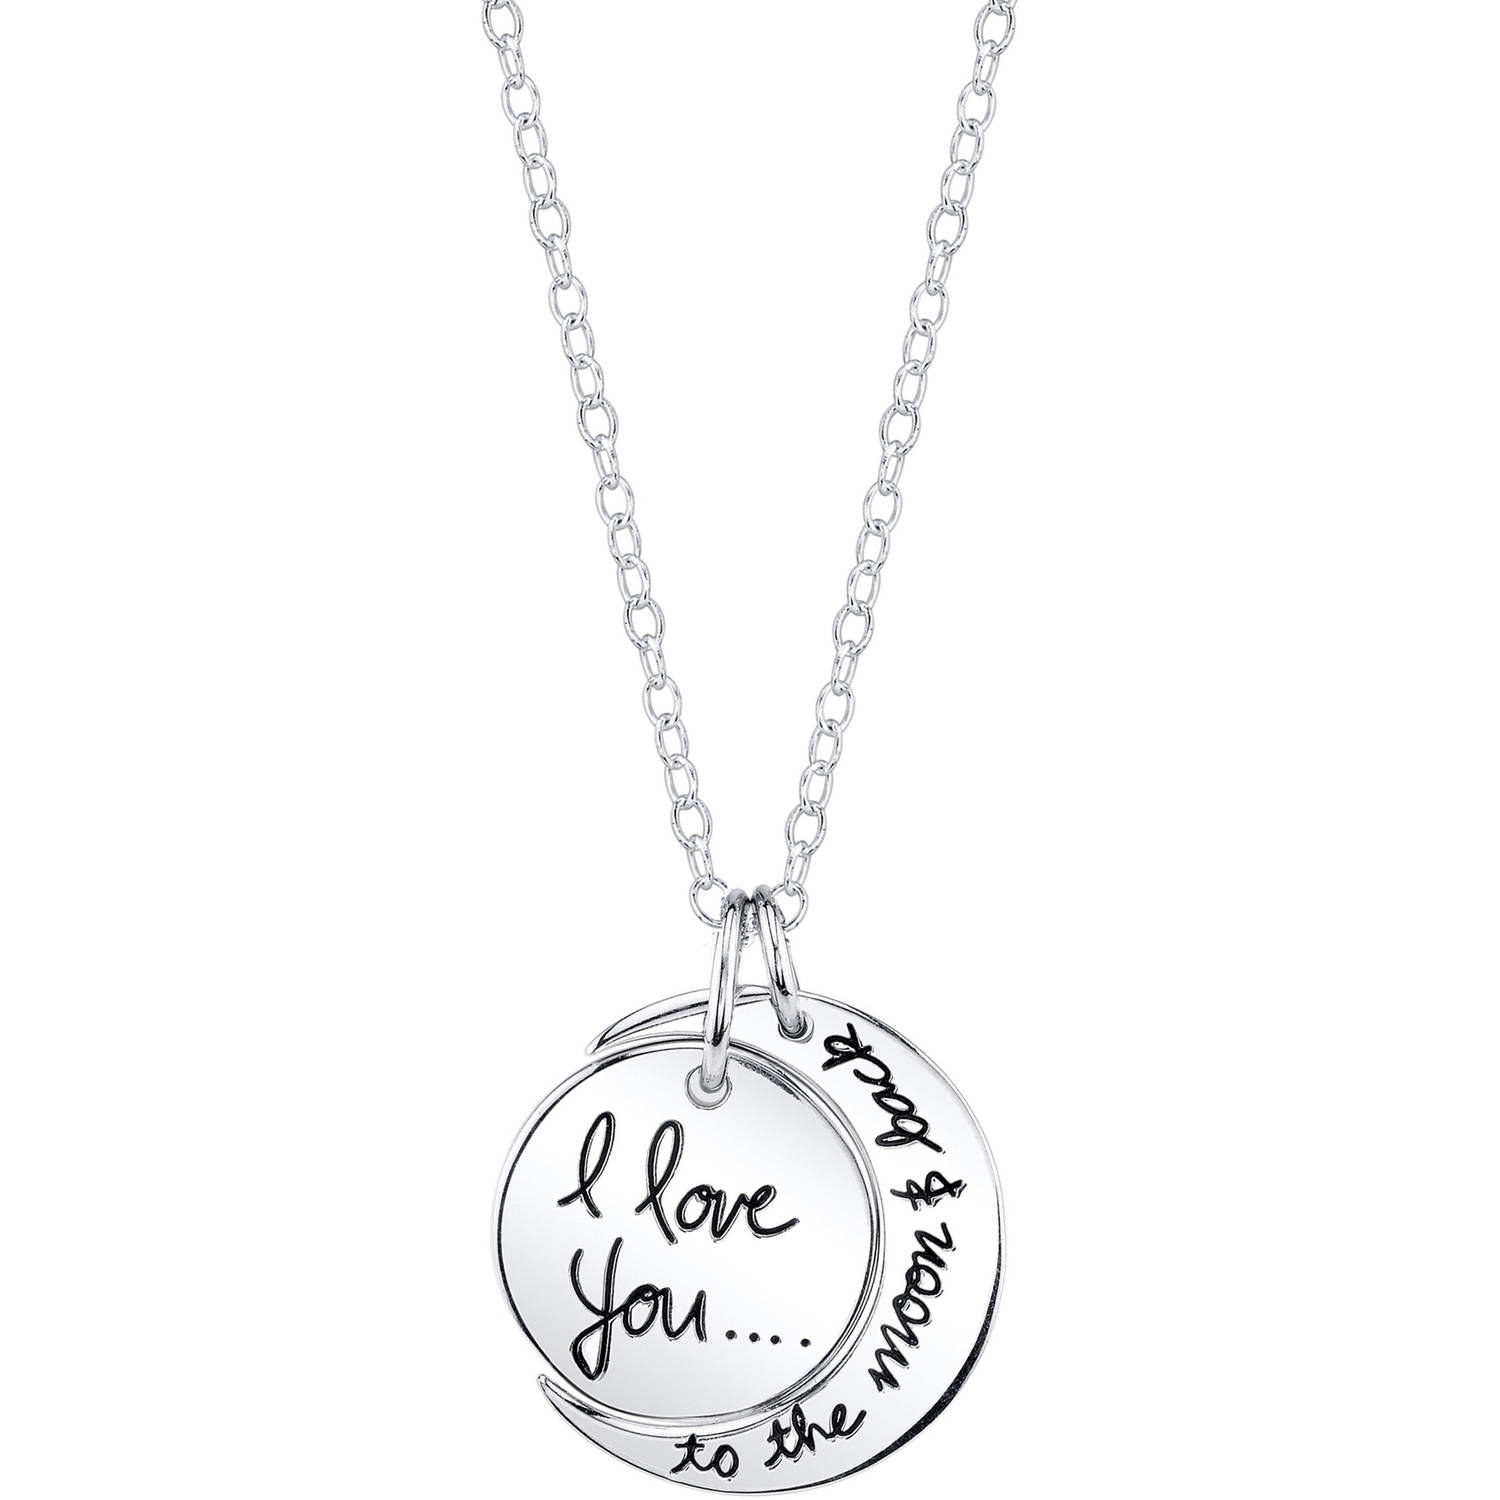 """A silver necklace with the text """"I love you to the moon and back"""""""